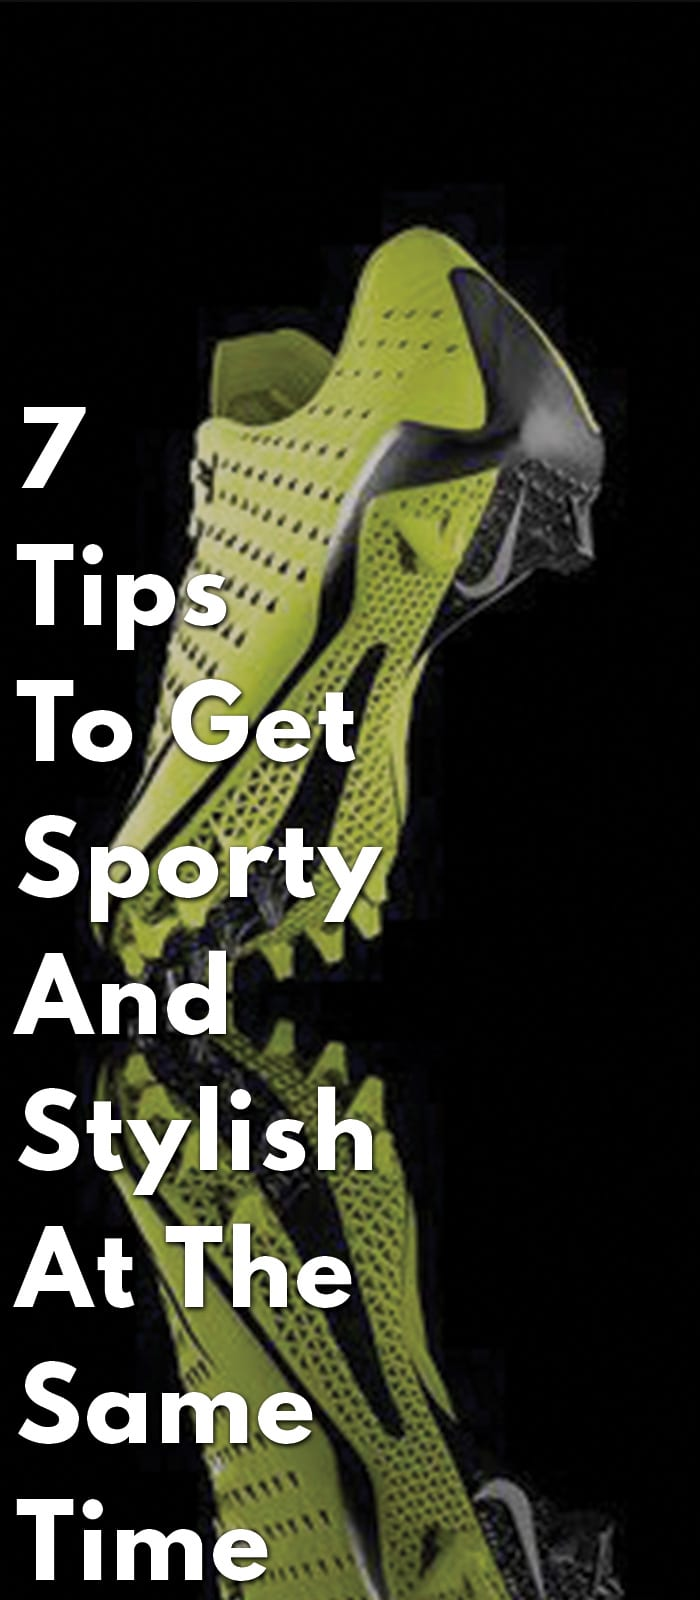 7-Tips-To-Get-Sporty-And-Stylish-At-The-Same-Time